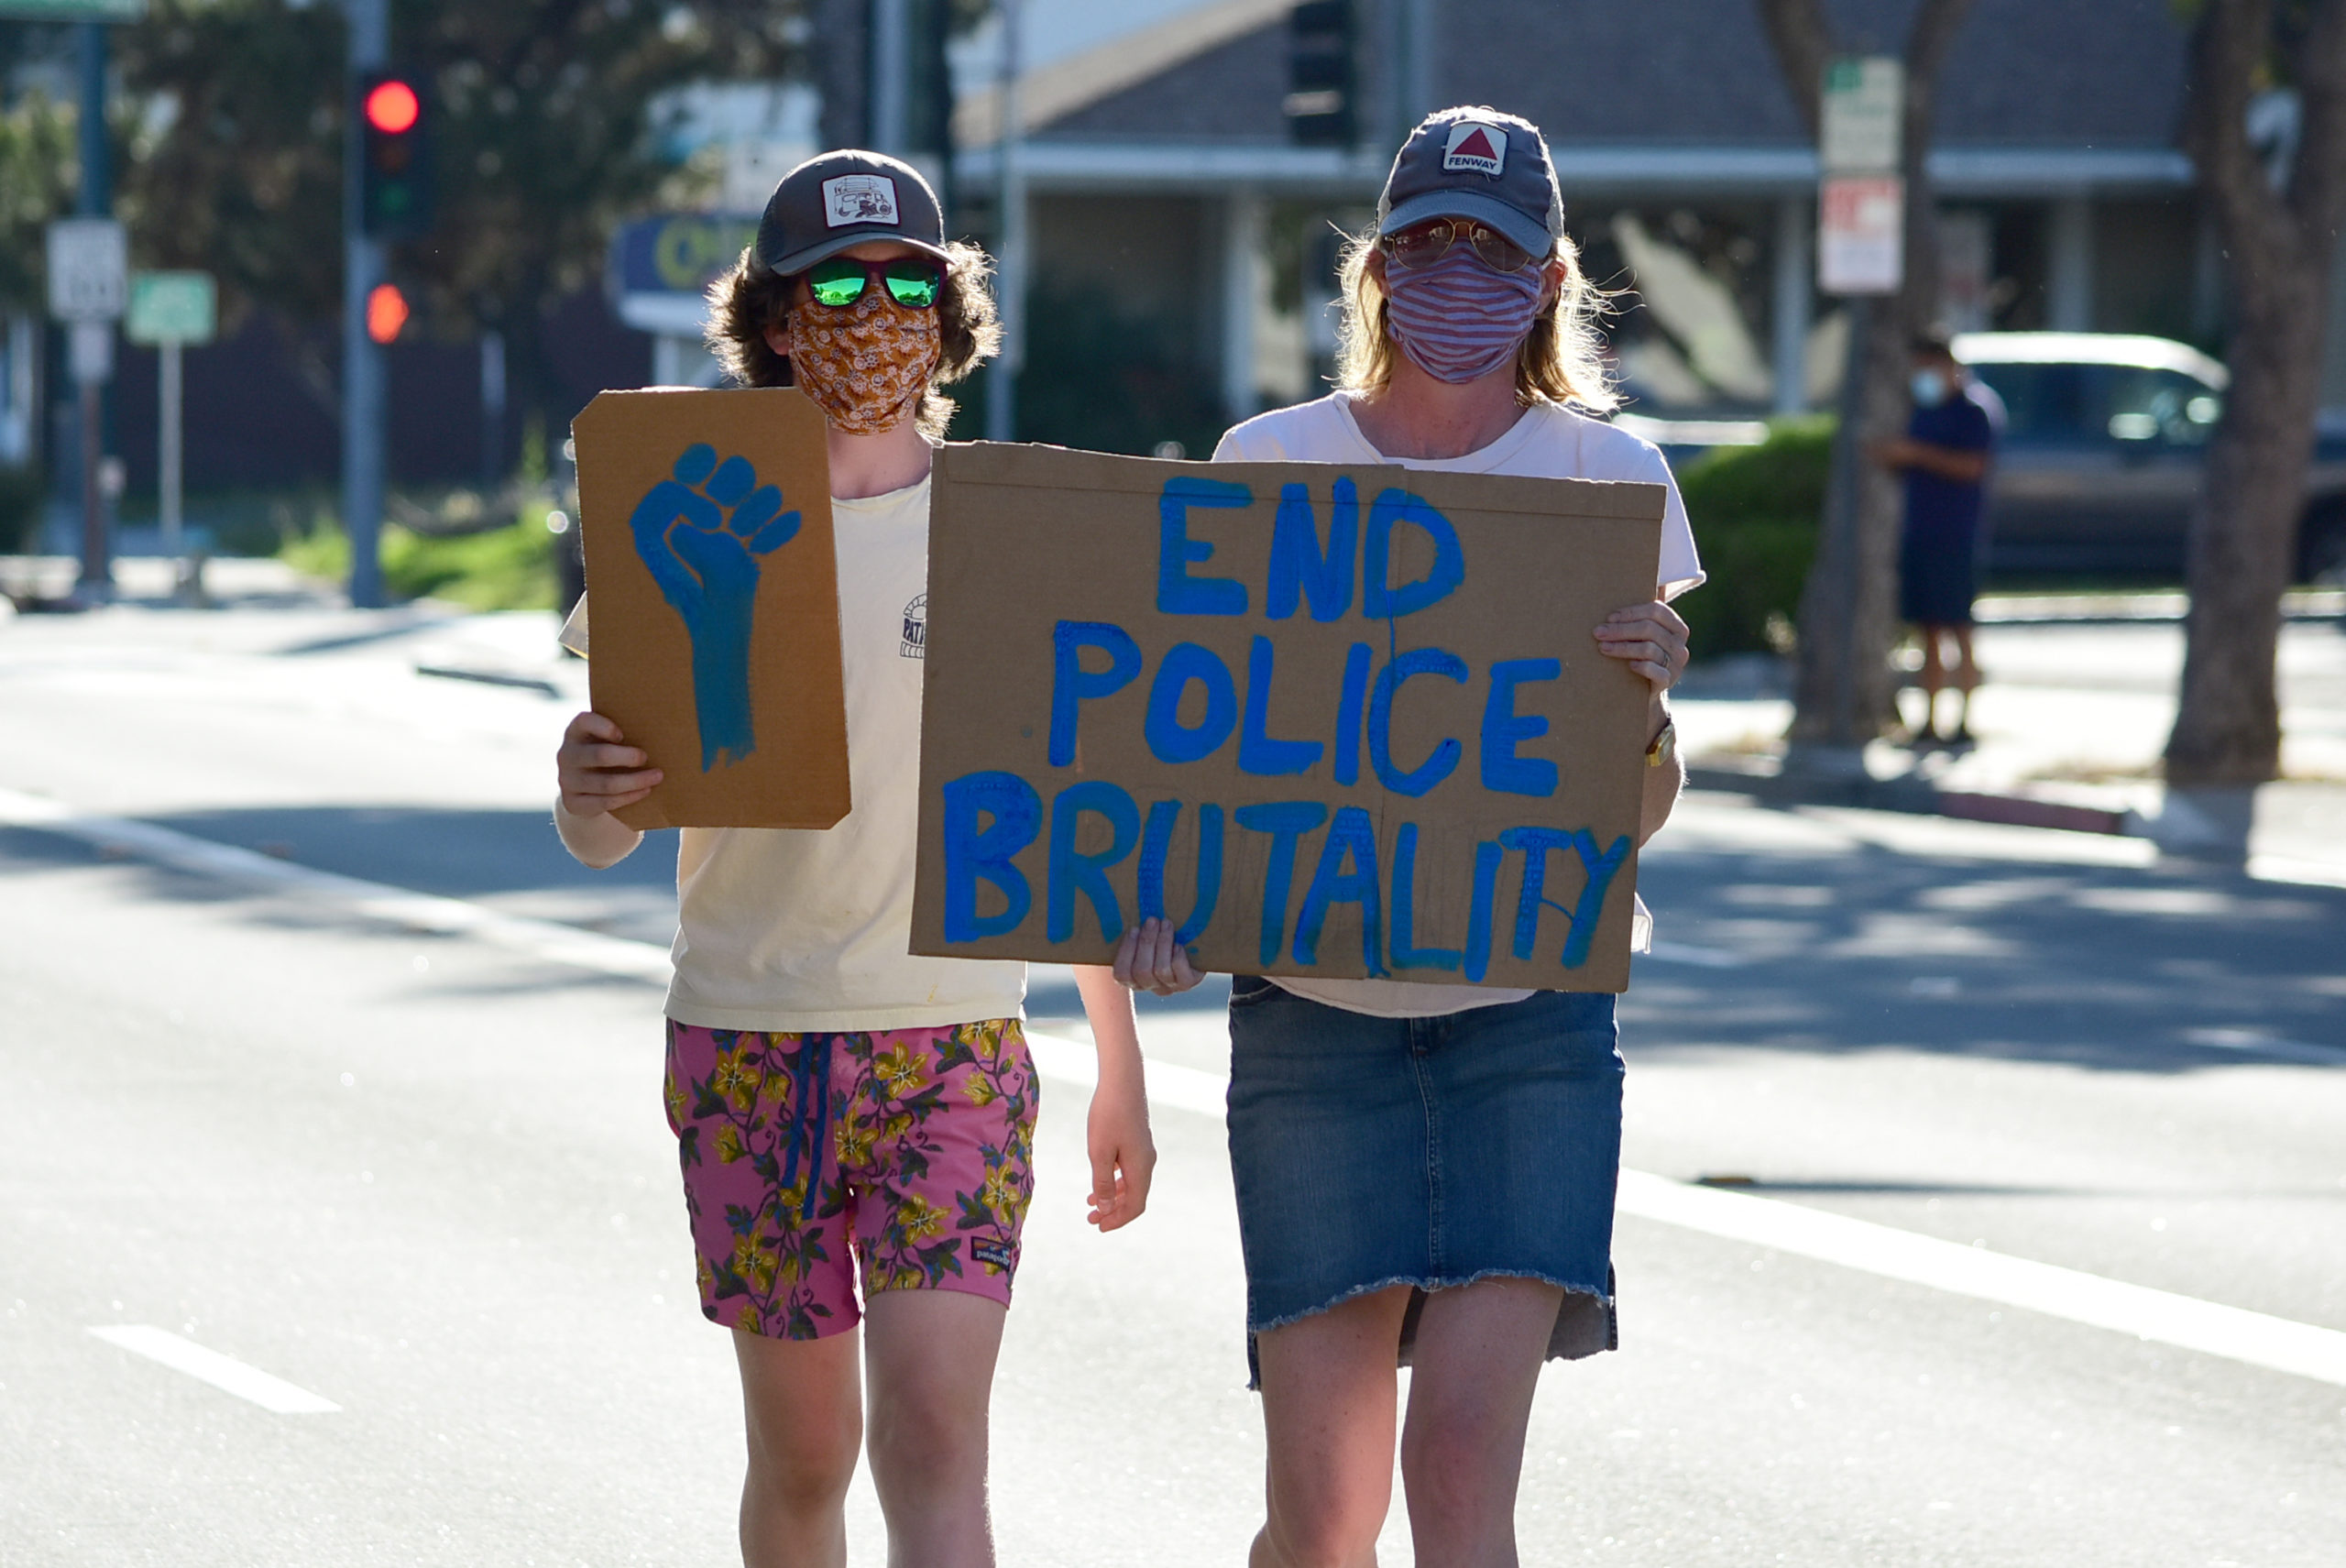 south-pasadena-news-06-12-2020-blm-black-lives-matter-sp-youth-for-police-reform-protest-city-hall-mission-st-14